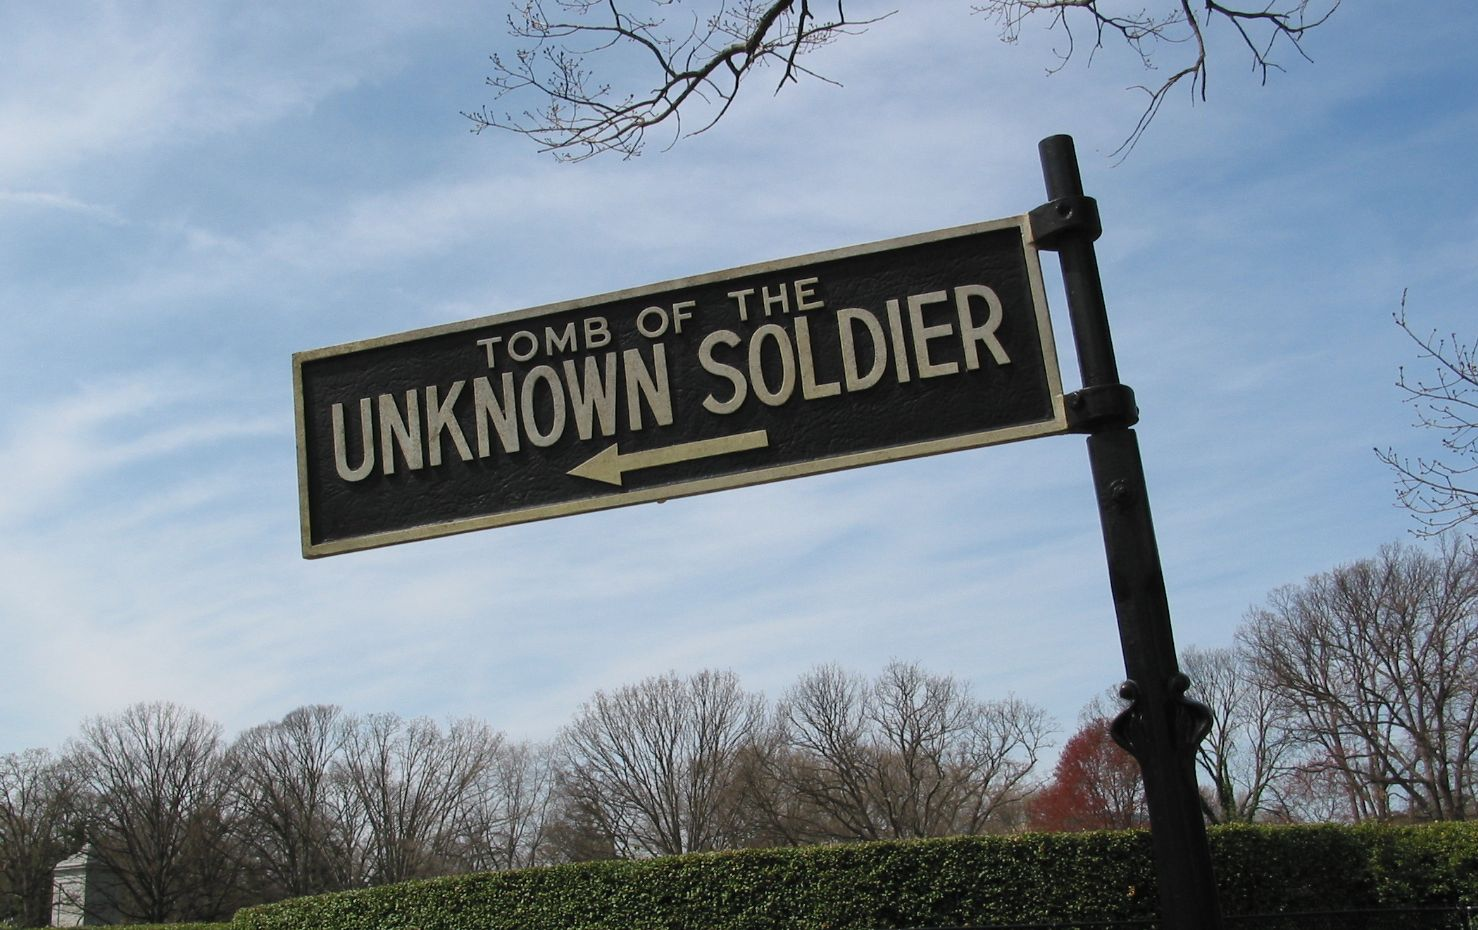 unknown soldier sign, arlington cemetary